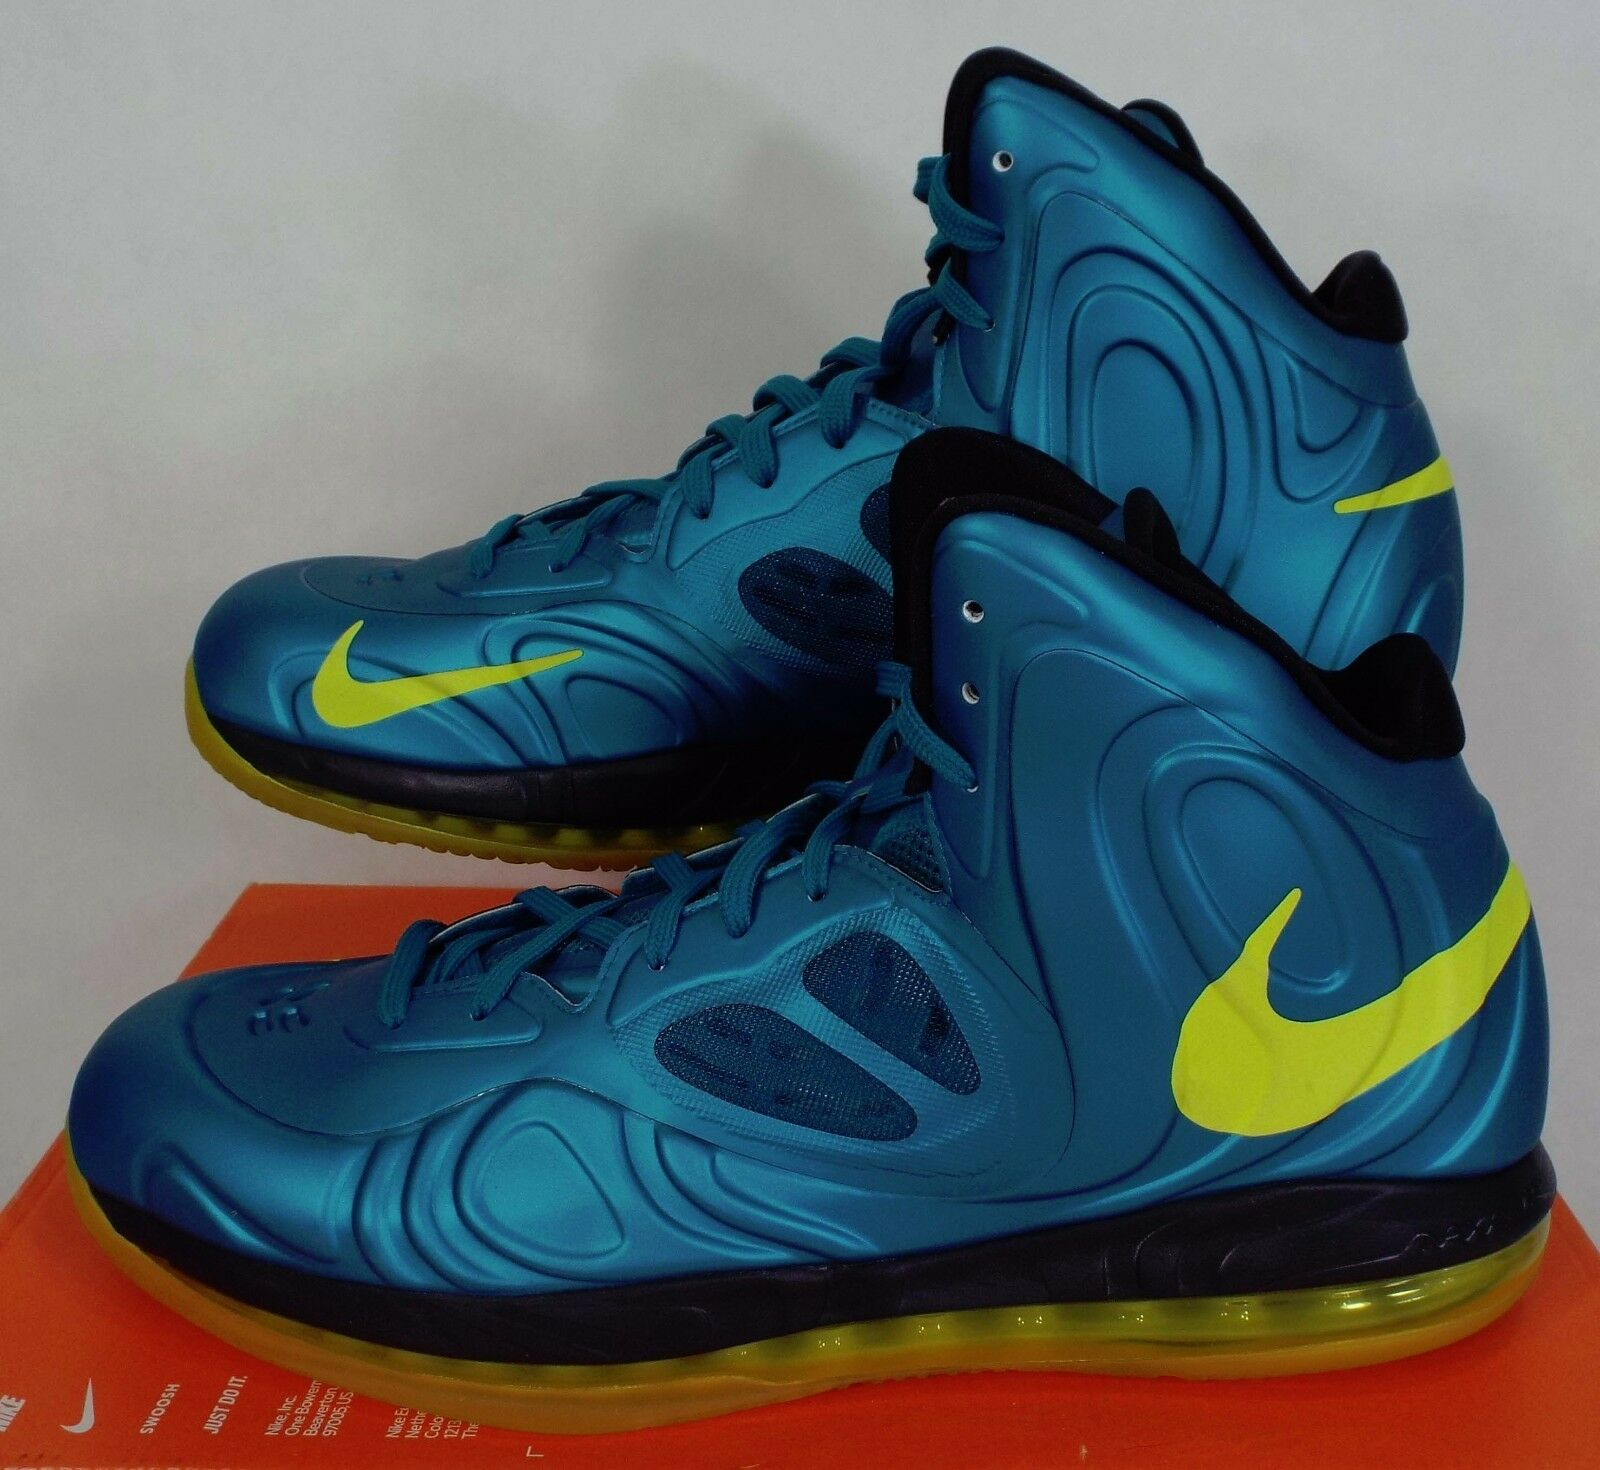 New homme 9.5 NIKE Air chaussures Max Hyperposite Tropical Teal chaussures Air 225 524862 303 023140